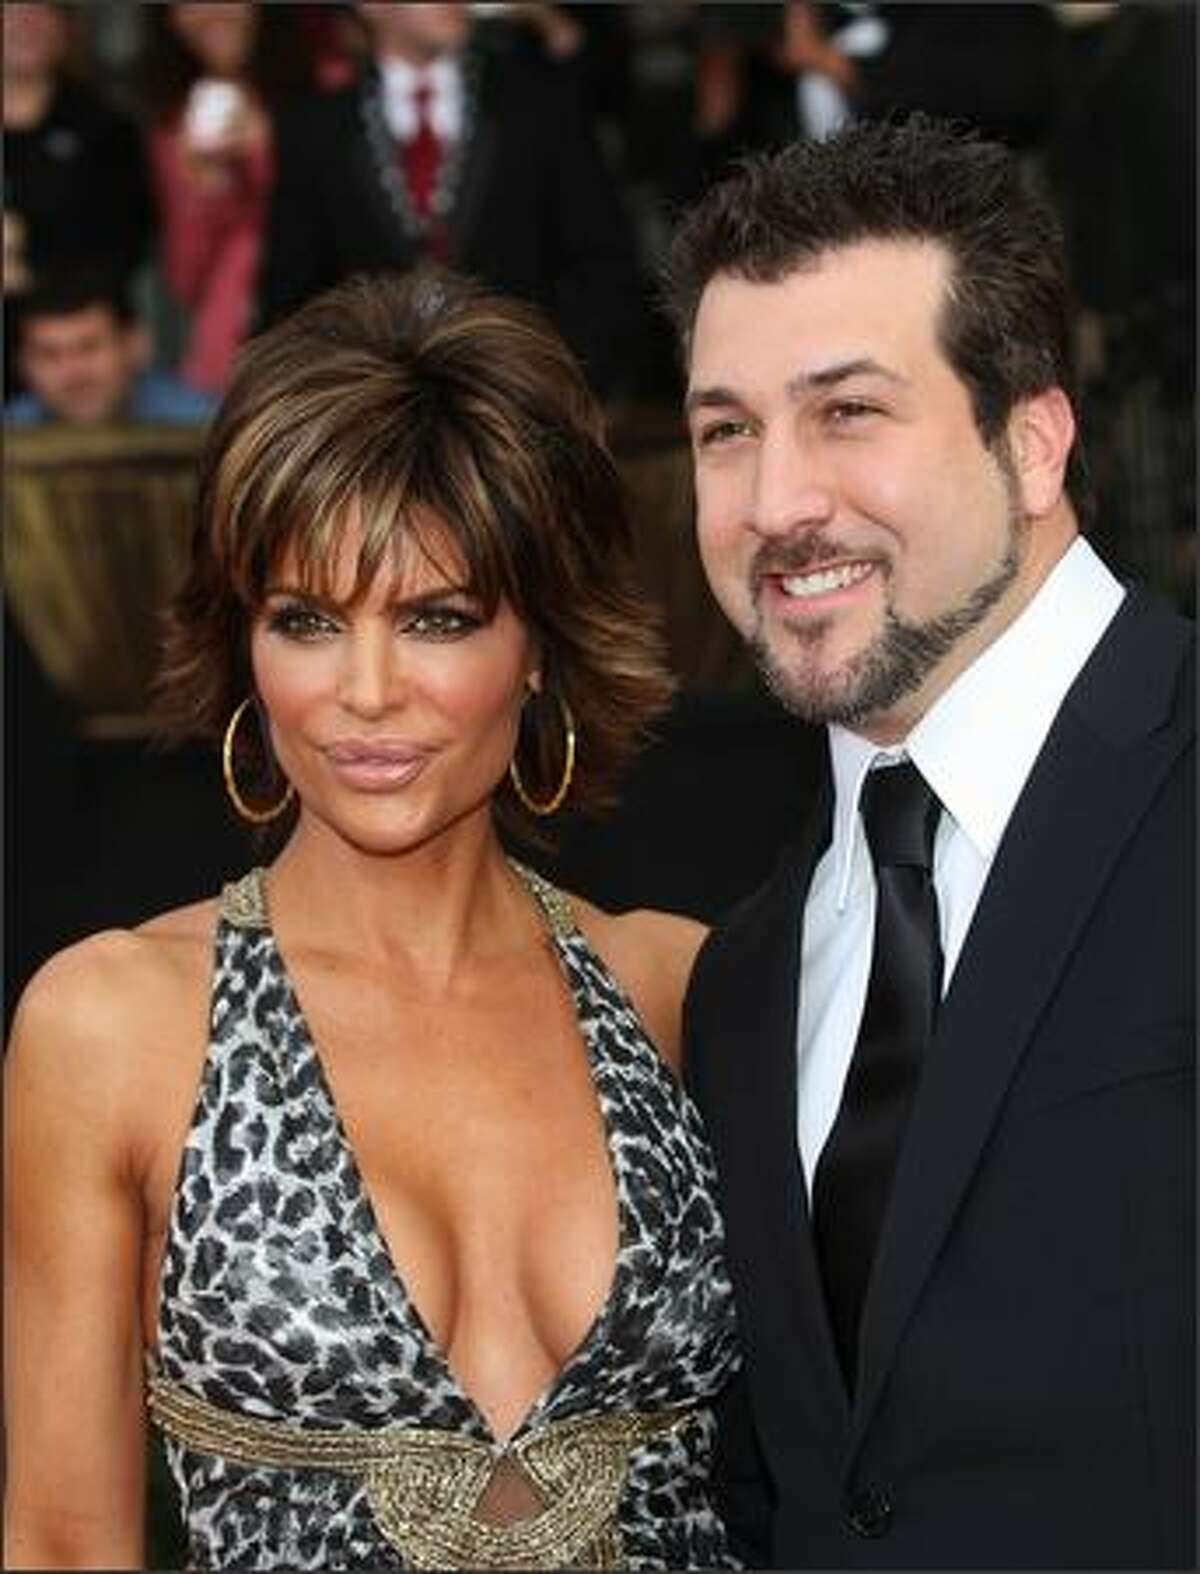 Actor Lisa Rinna and Joey Fatone arrive at the 14th annual Screen Actors Guild awards held at the Shrine Auditorium on January 27, 2008 in Los Angeles, Calif.